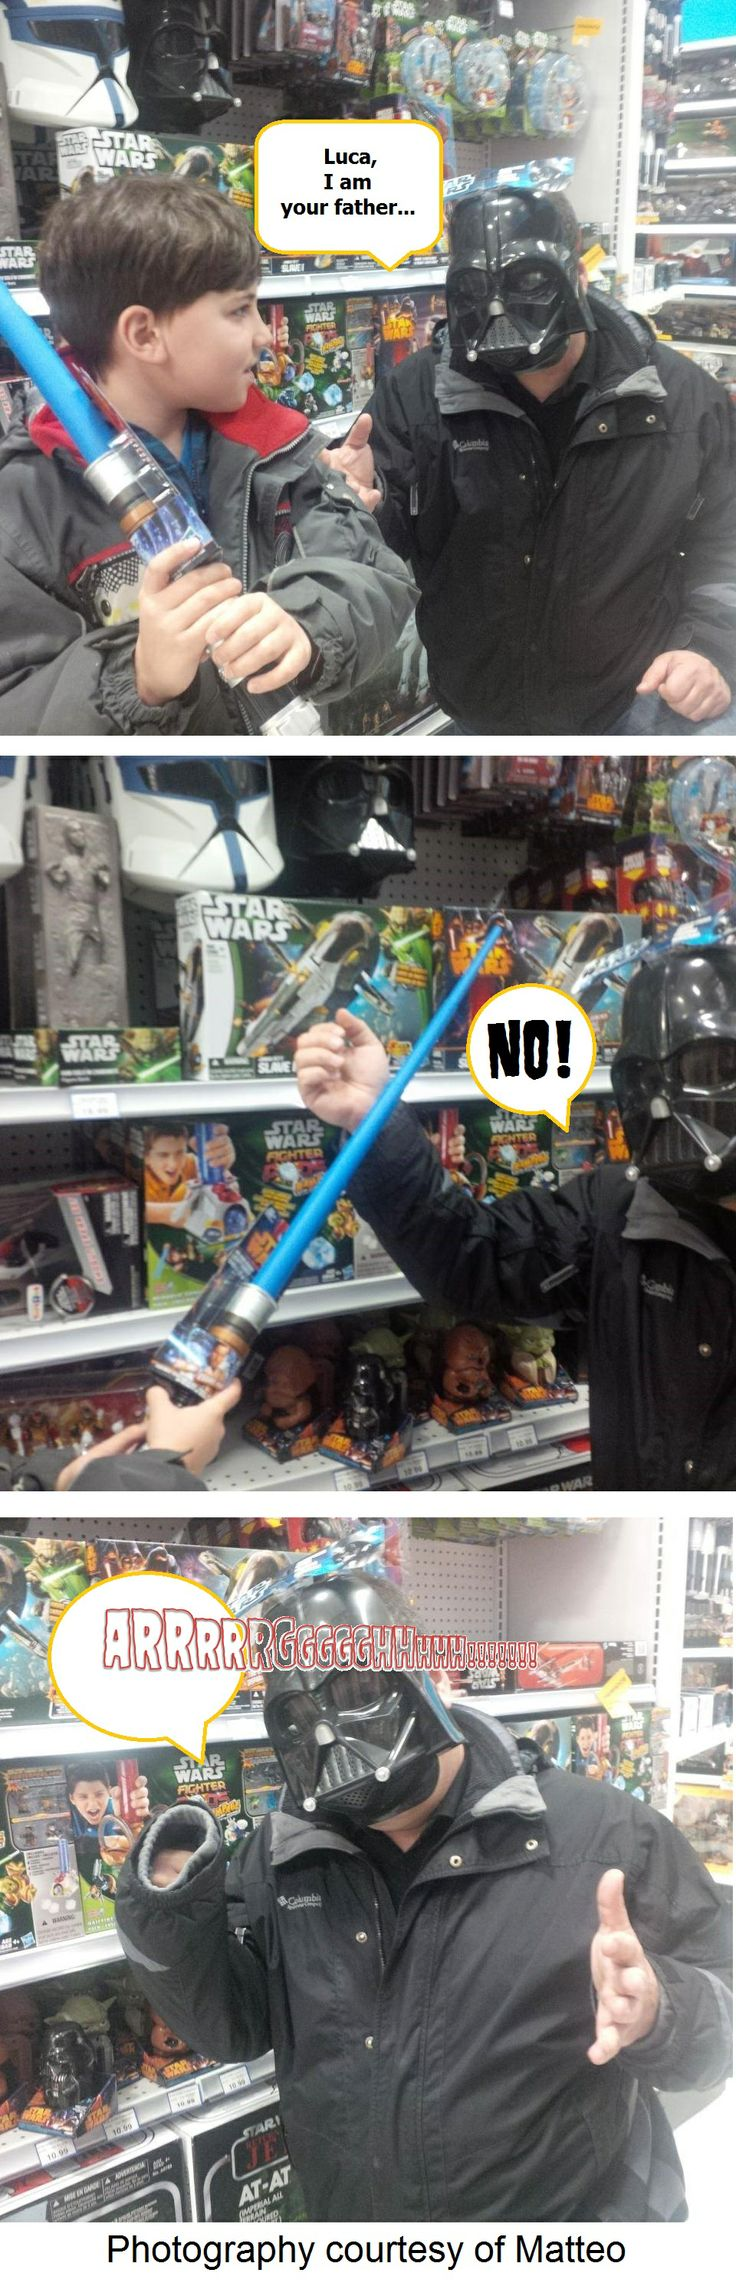 Playin' Star Wars at Toys R Us - Thank-you to the kind staff for not kicking us out!